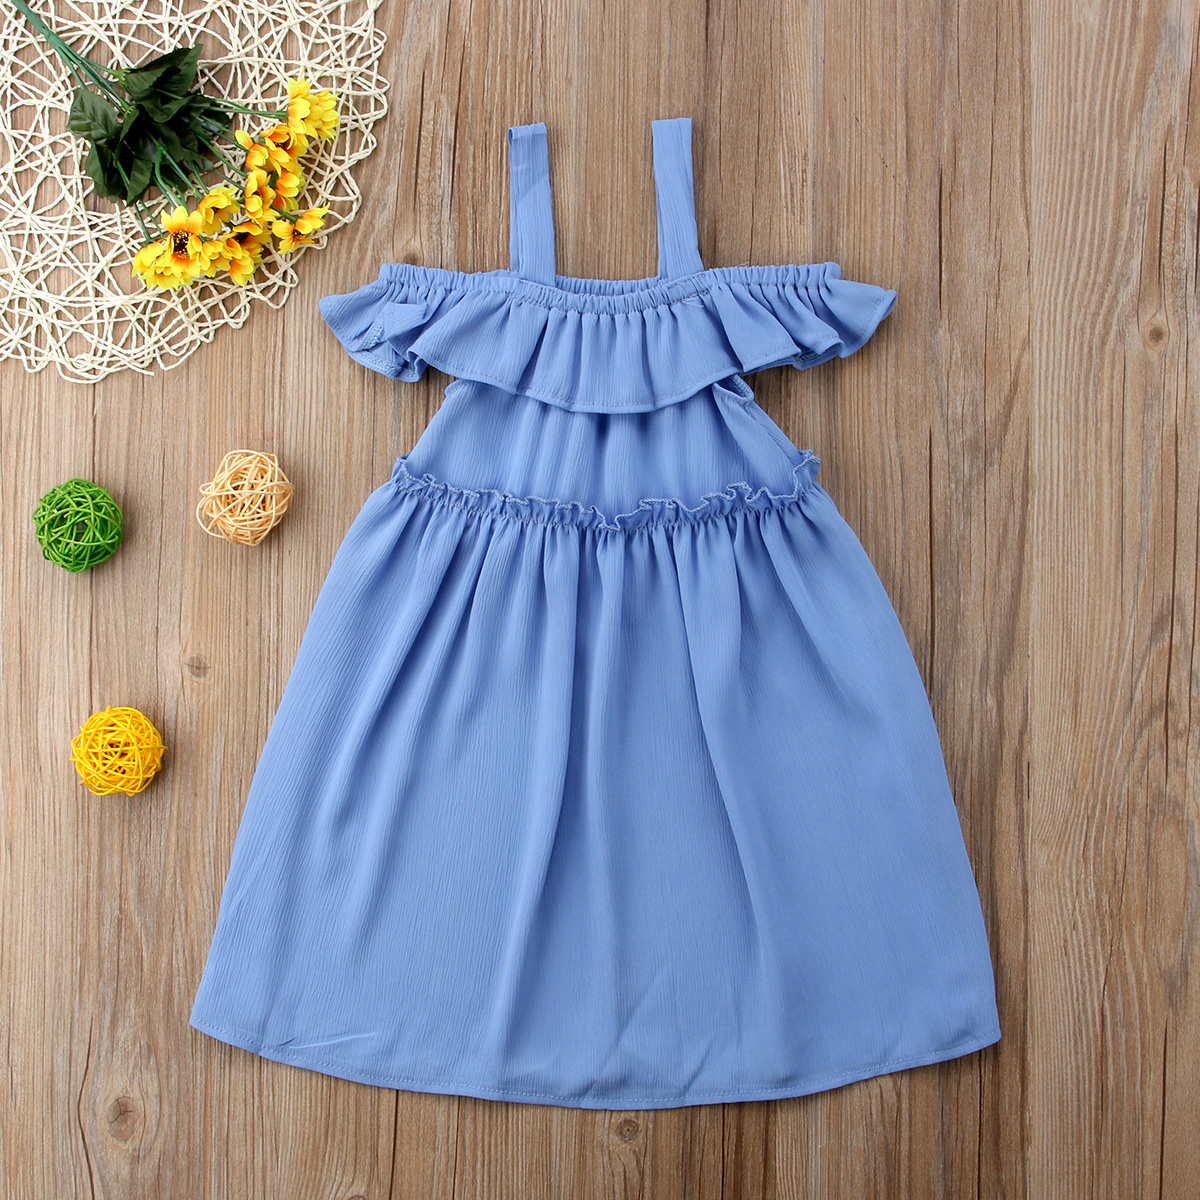 Newborn Infant Baby Kid Girl Sleeveless Dress Formal Dresses Toddle Clothes B3